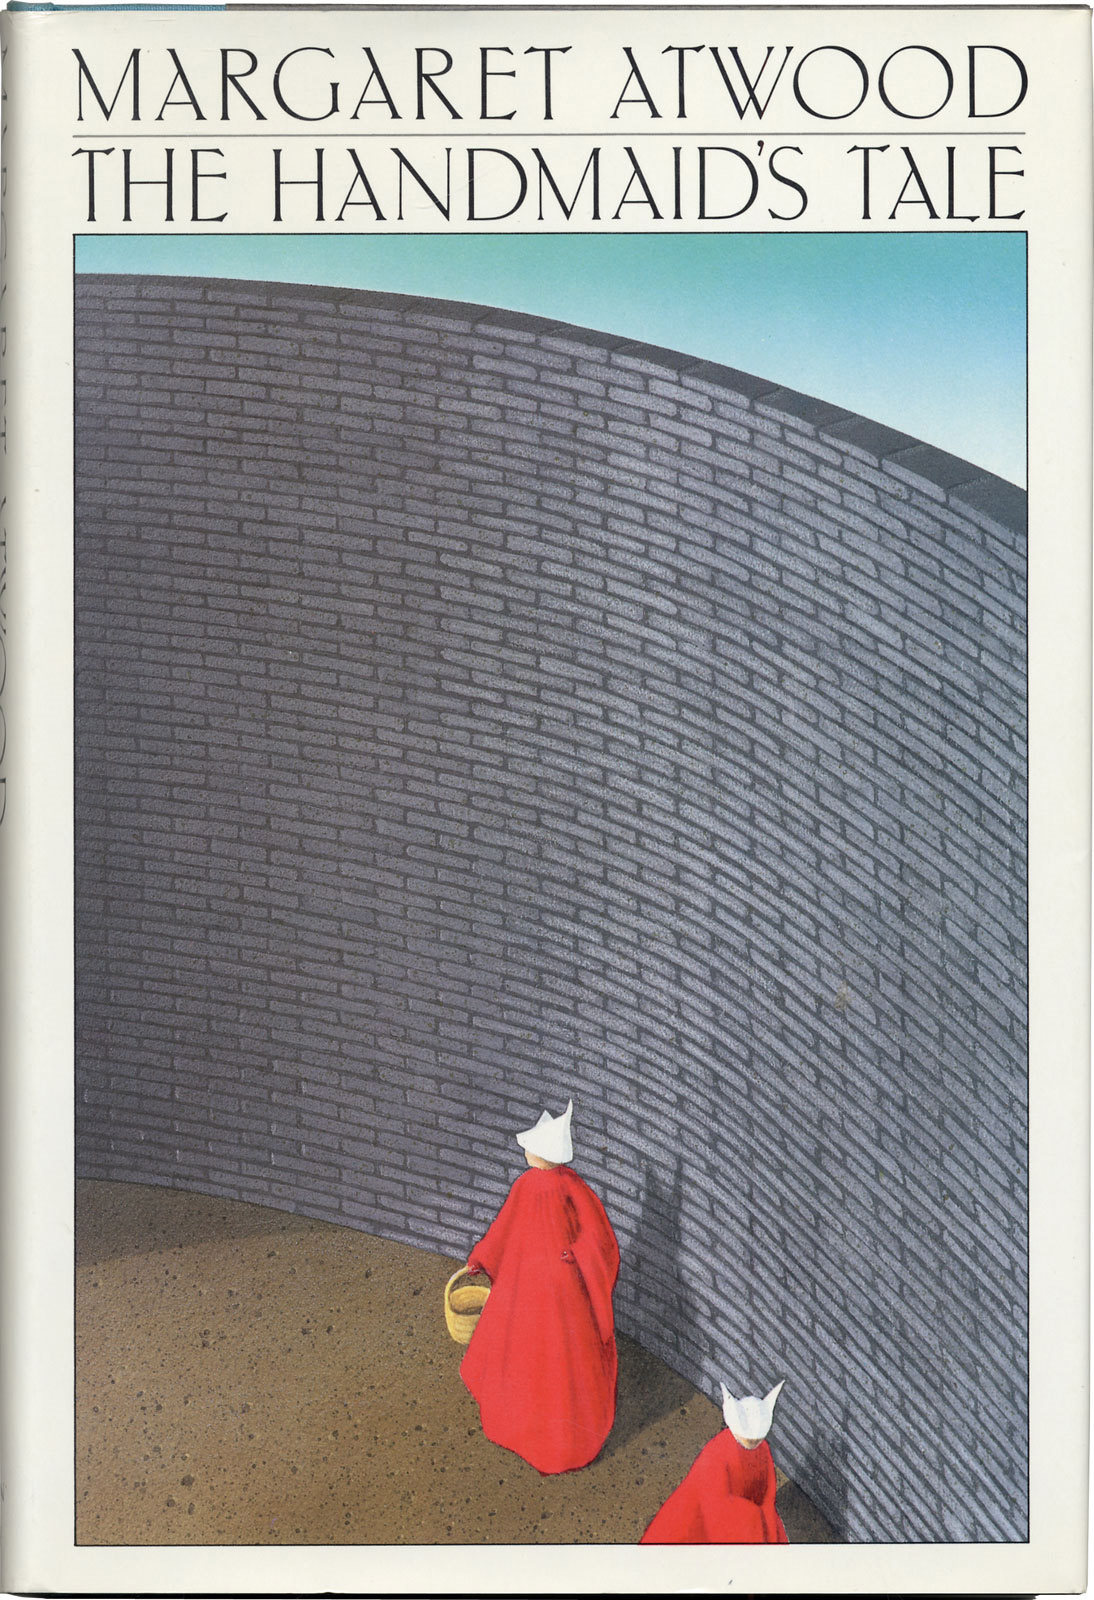 Book cover for Margaret Atwood's The Handmaid's Tale in the South Manchester, Chorlton, and Didsbury book group